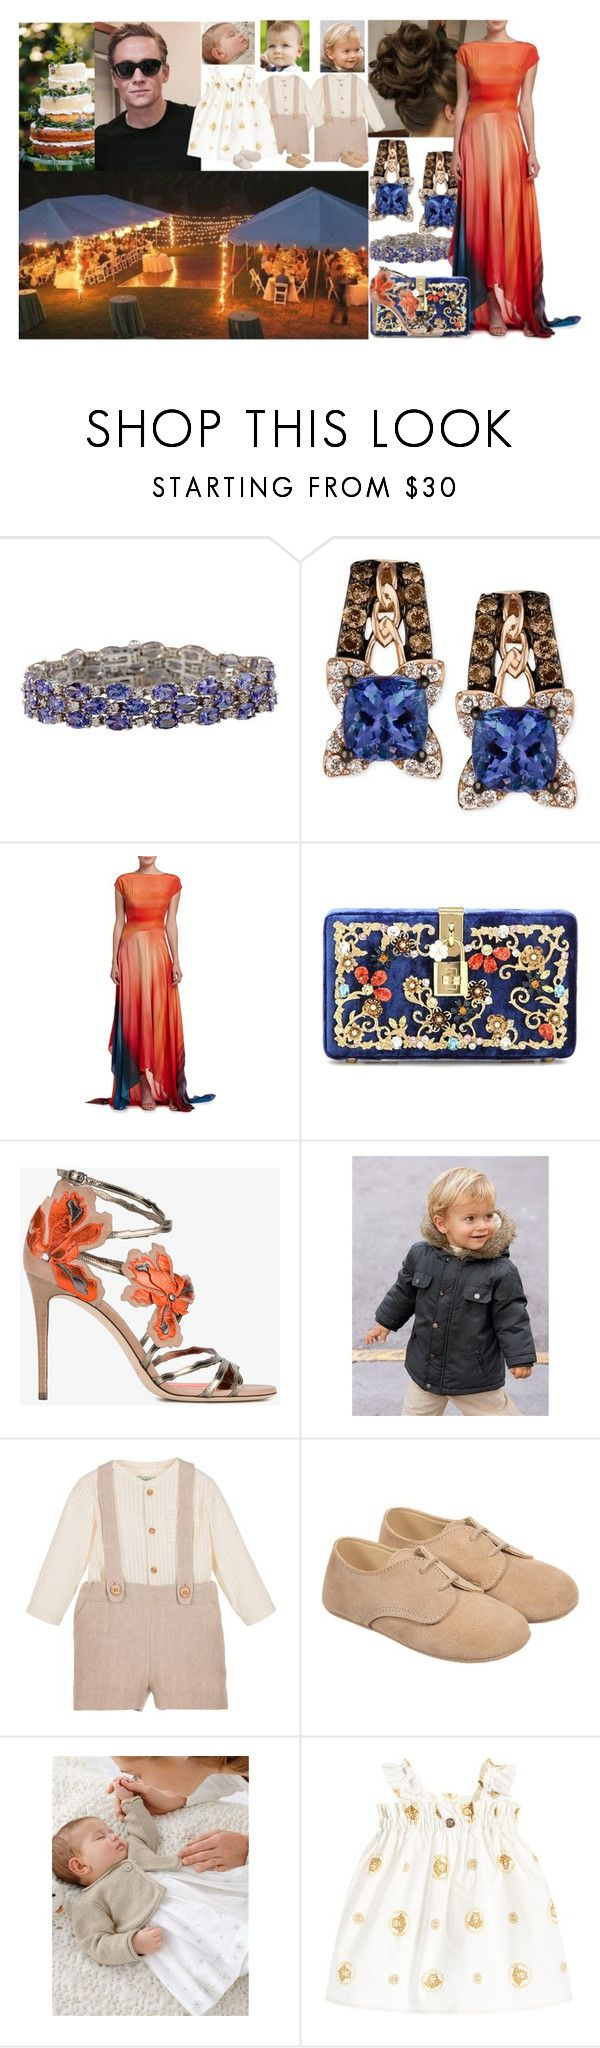 """""""Rebecca, Jacob, Benjamin, Julian and Sarah Miller at the wedding of Alexander and Fiona"""" by charlottedebora ❤ liked on Polyvore featuring LE VIAN, ZAC Zac Posen, Dolce&Gabbana, Jimmy Choo and Nanos"""